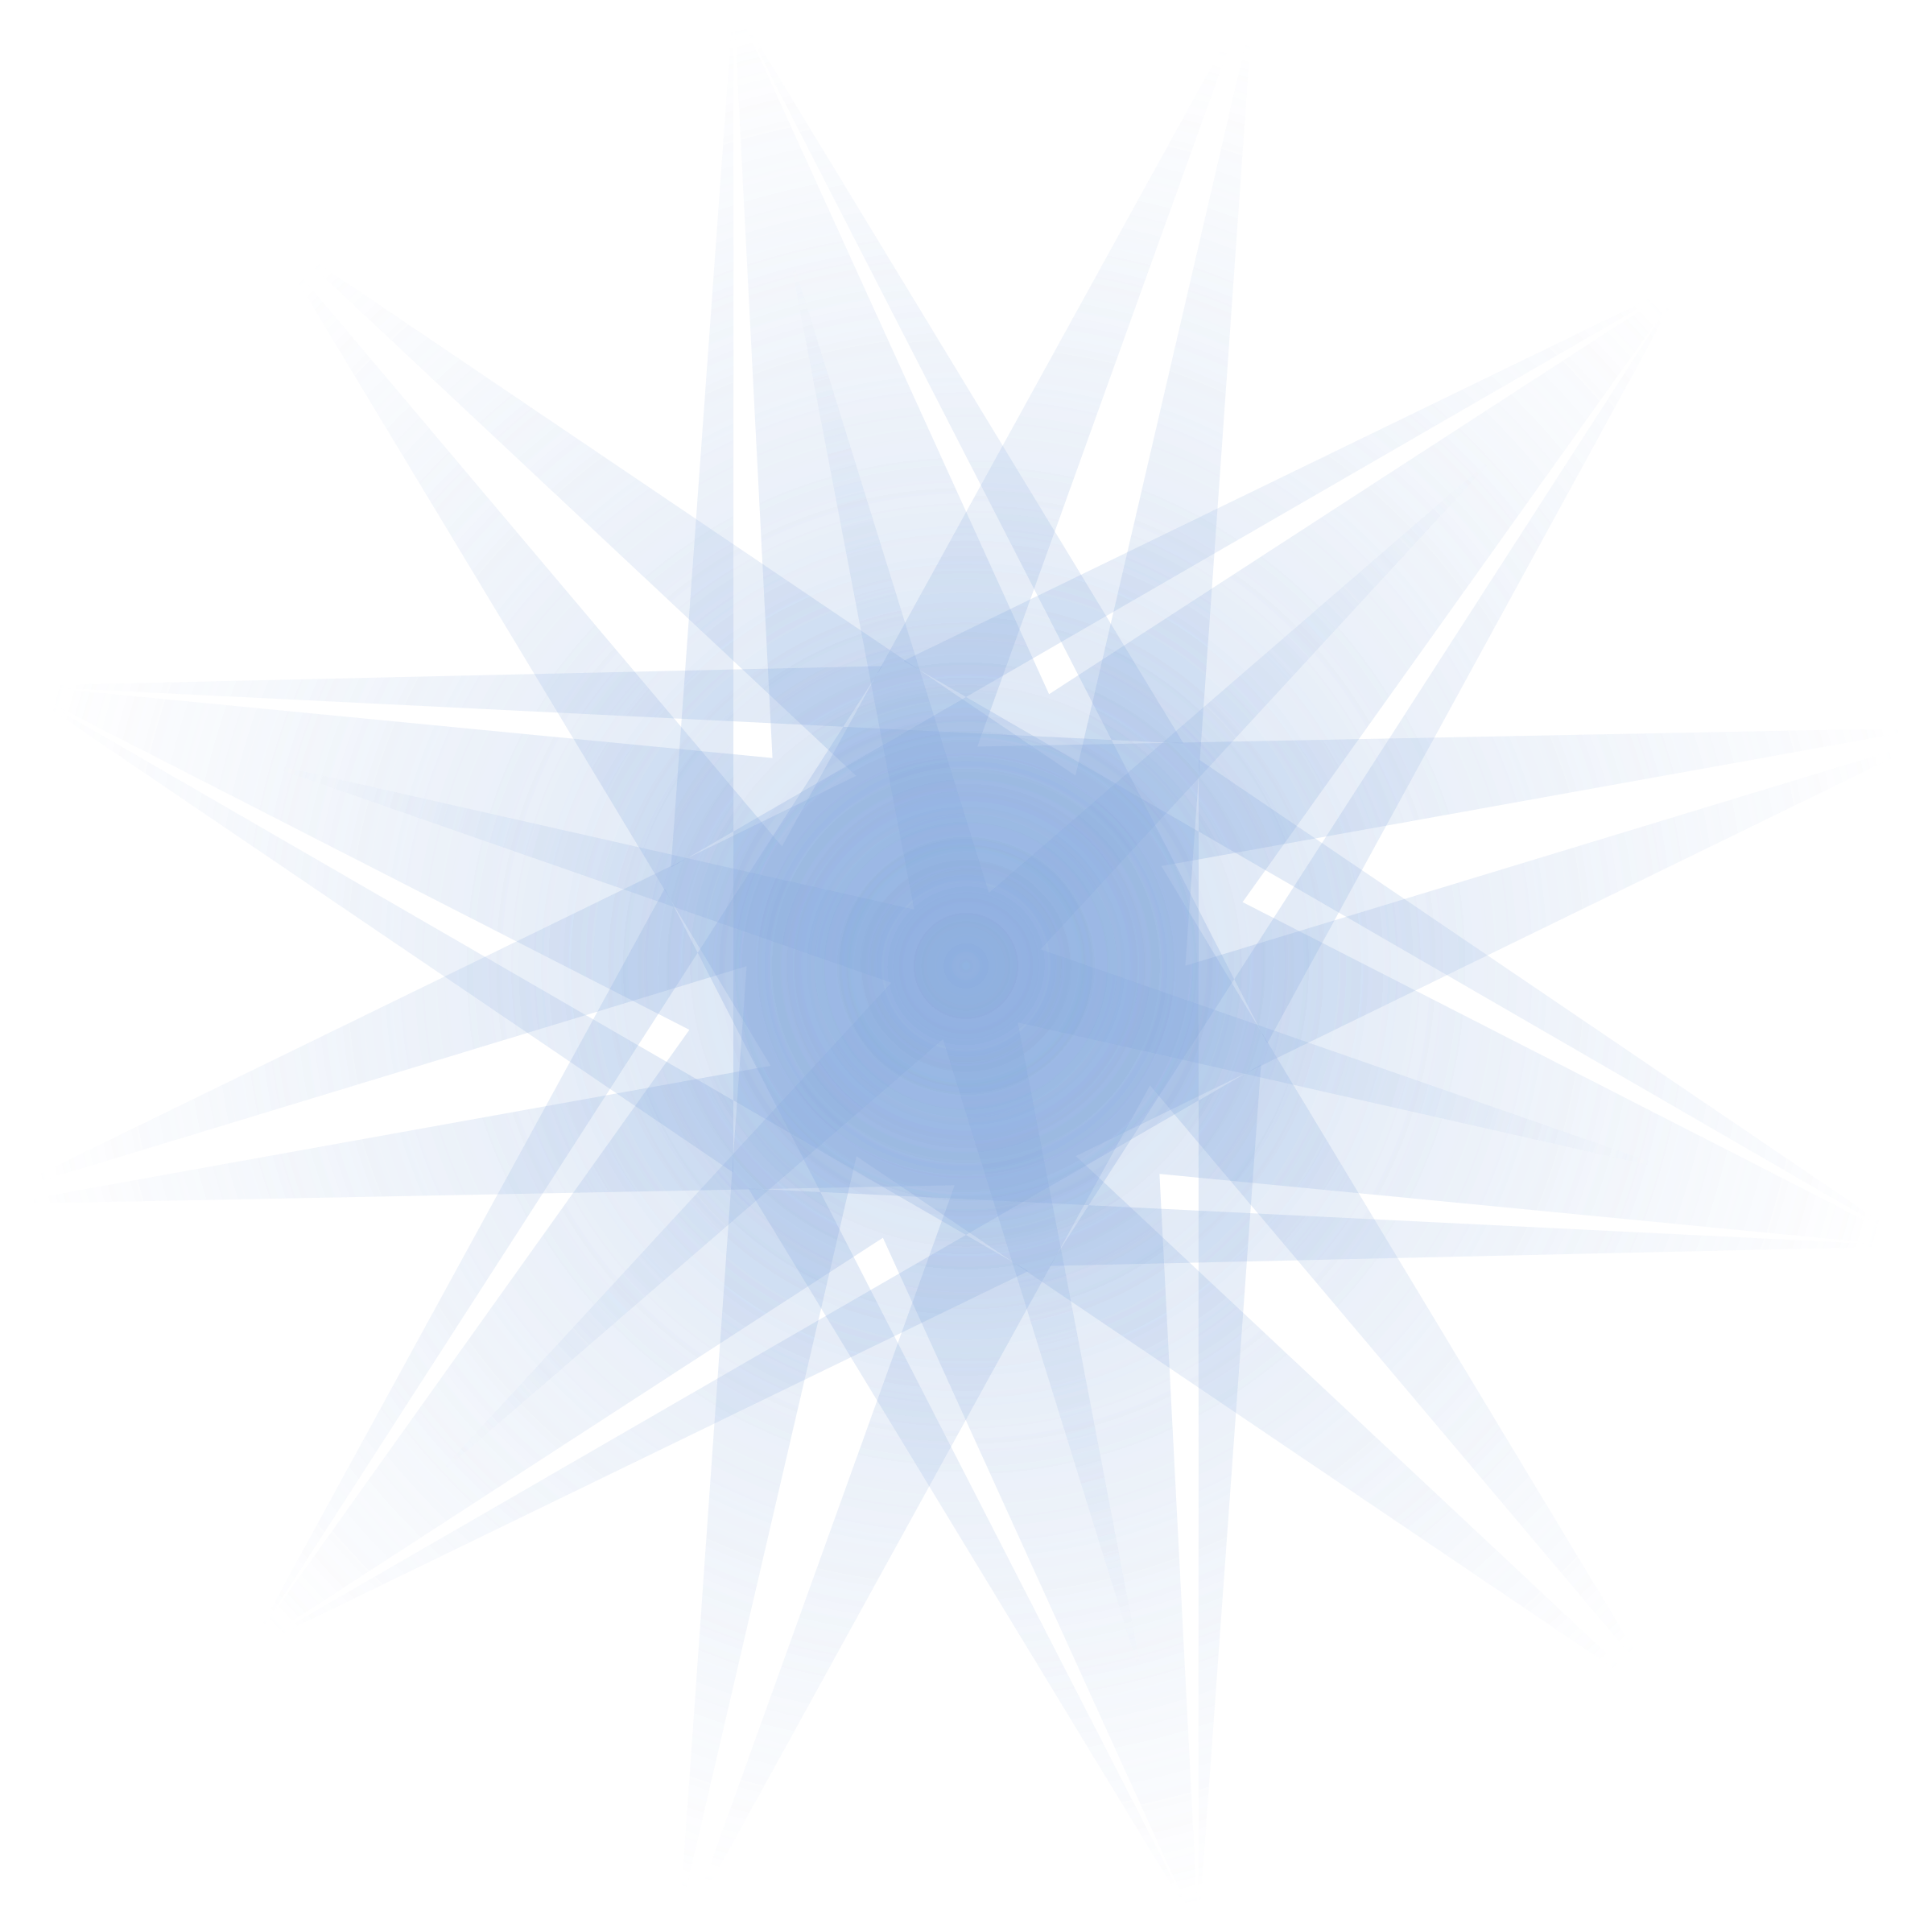 Snowflake clipart for microsoft office graphic royalty free stock Clipart - Snowflake graphic royalty free stock